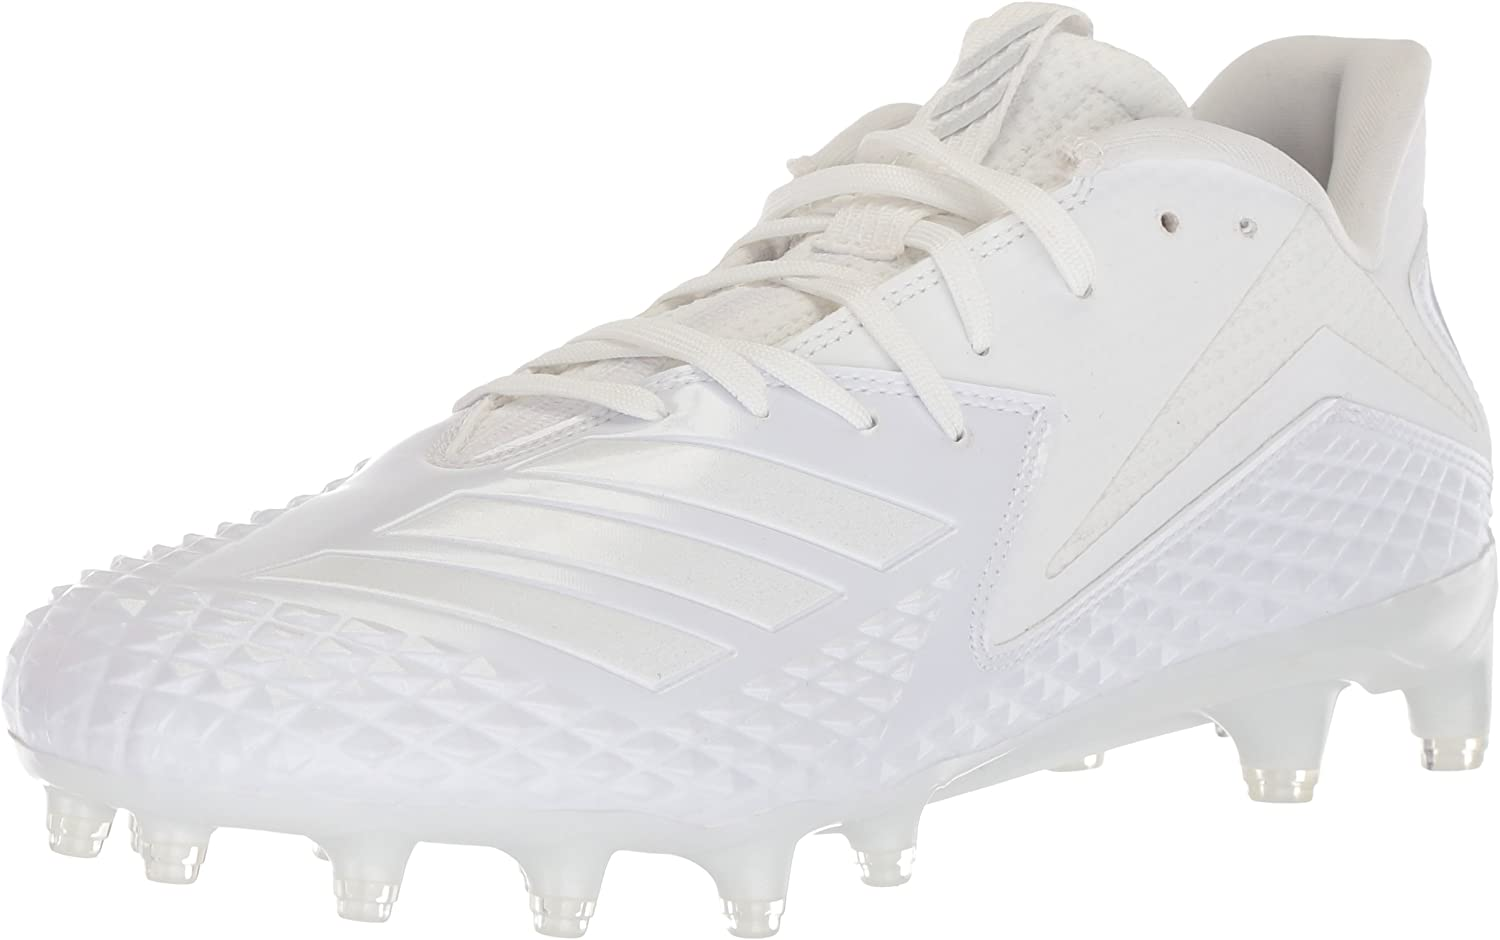 Adidas Men's Freak X Carbon Mid Football shoes White, 18 M US